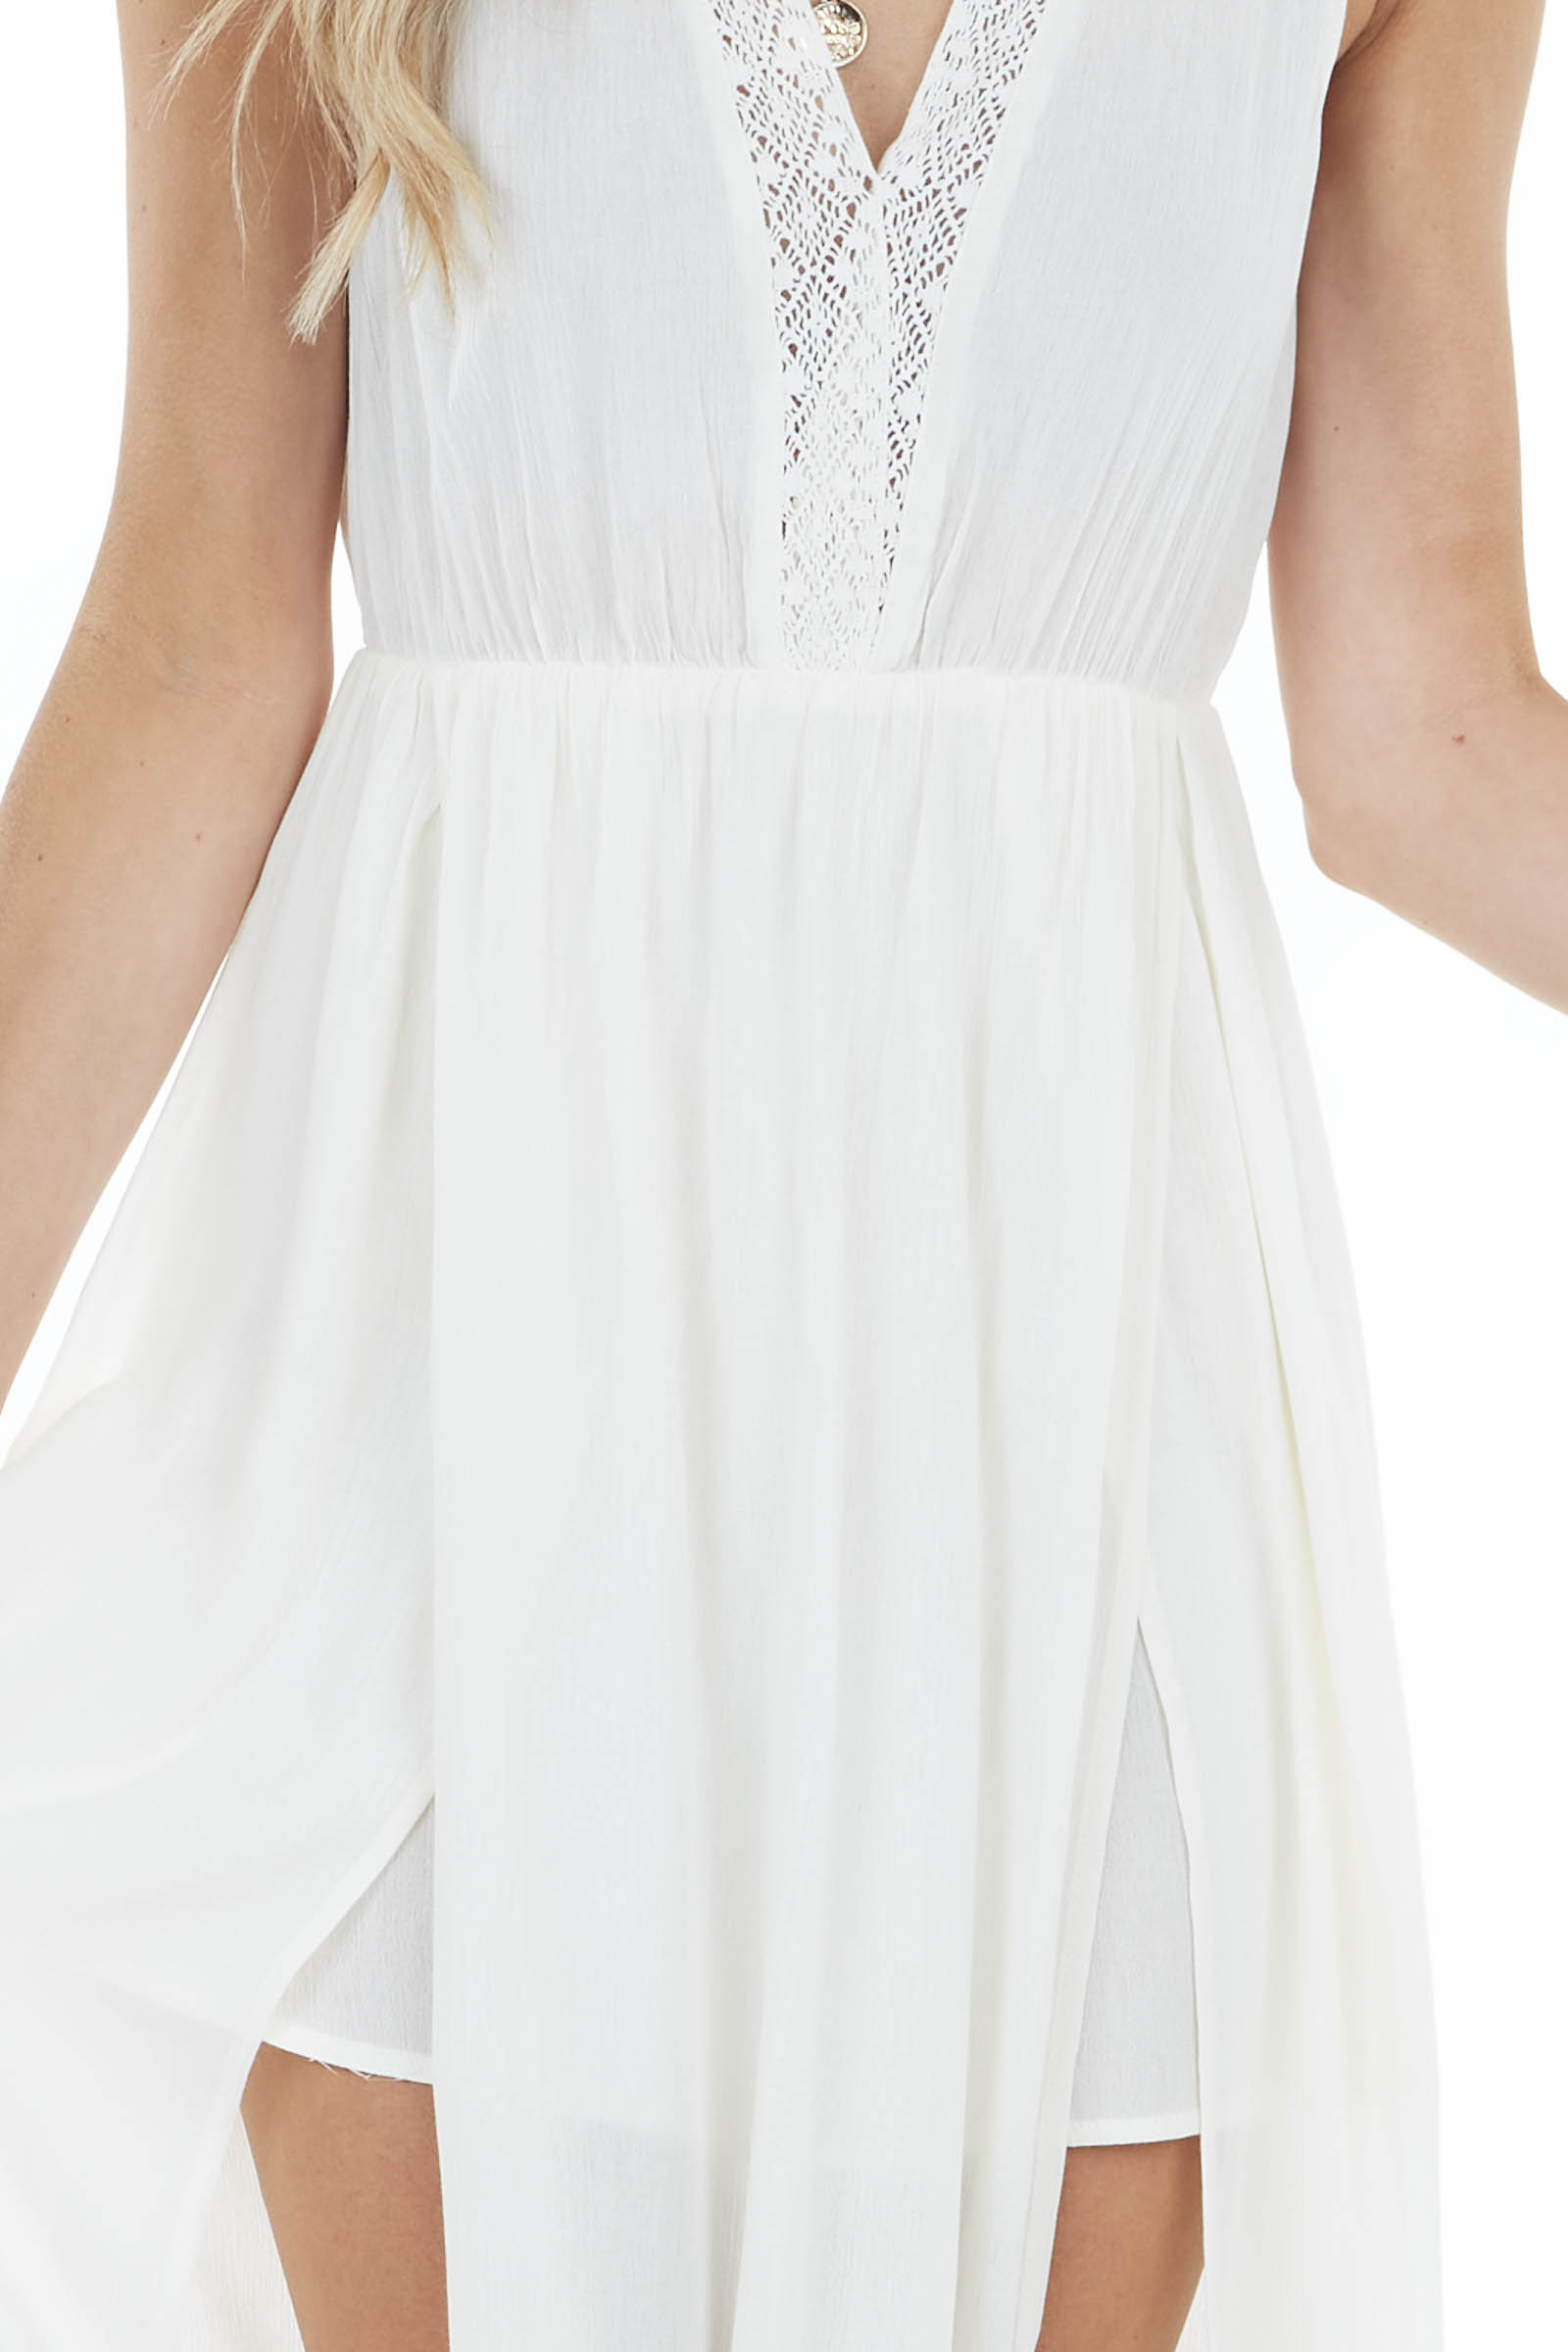 Cream Sleeveless Maxi Dress with Deep Side Slits and Lace